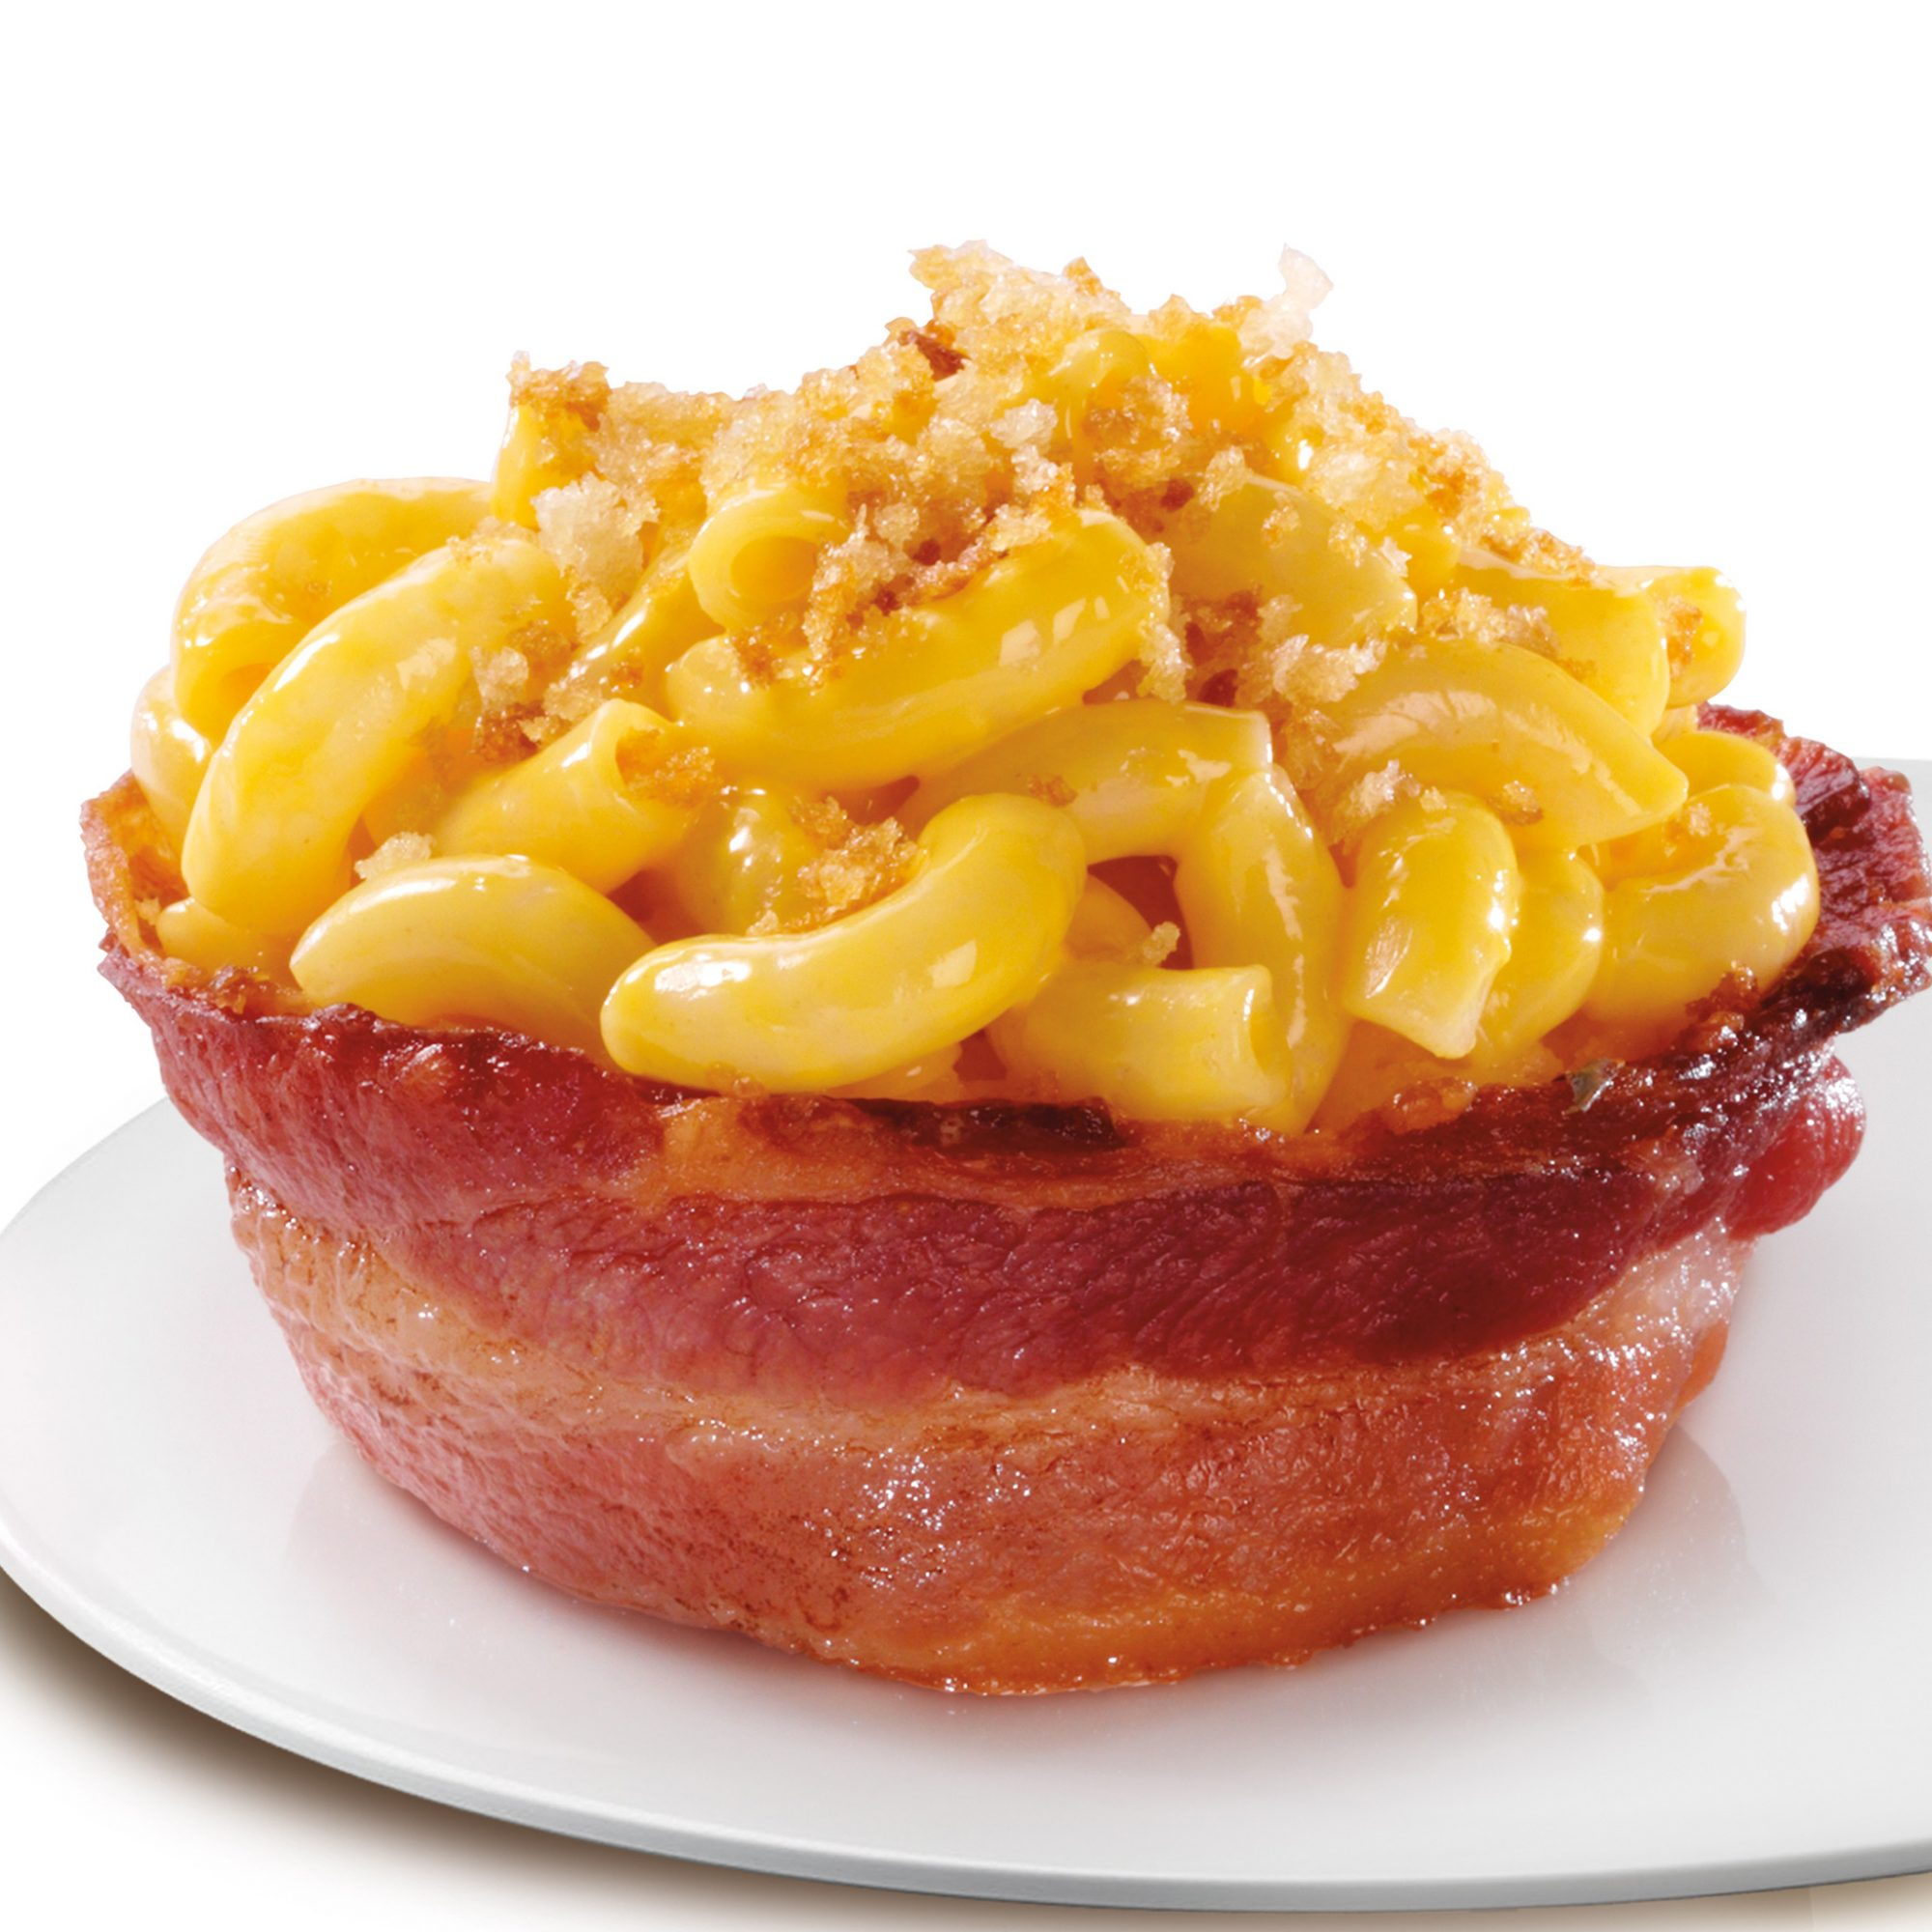 FWX PERFECT BACON BOWL